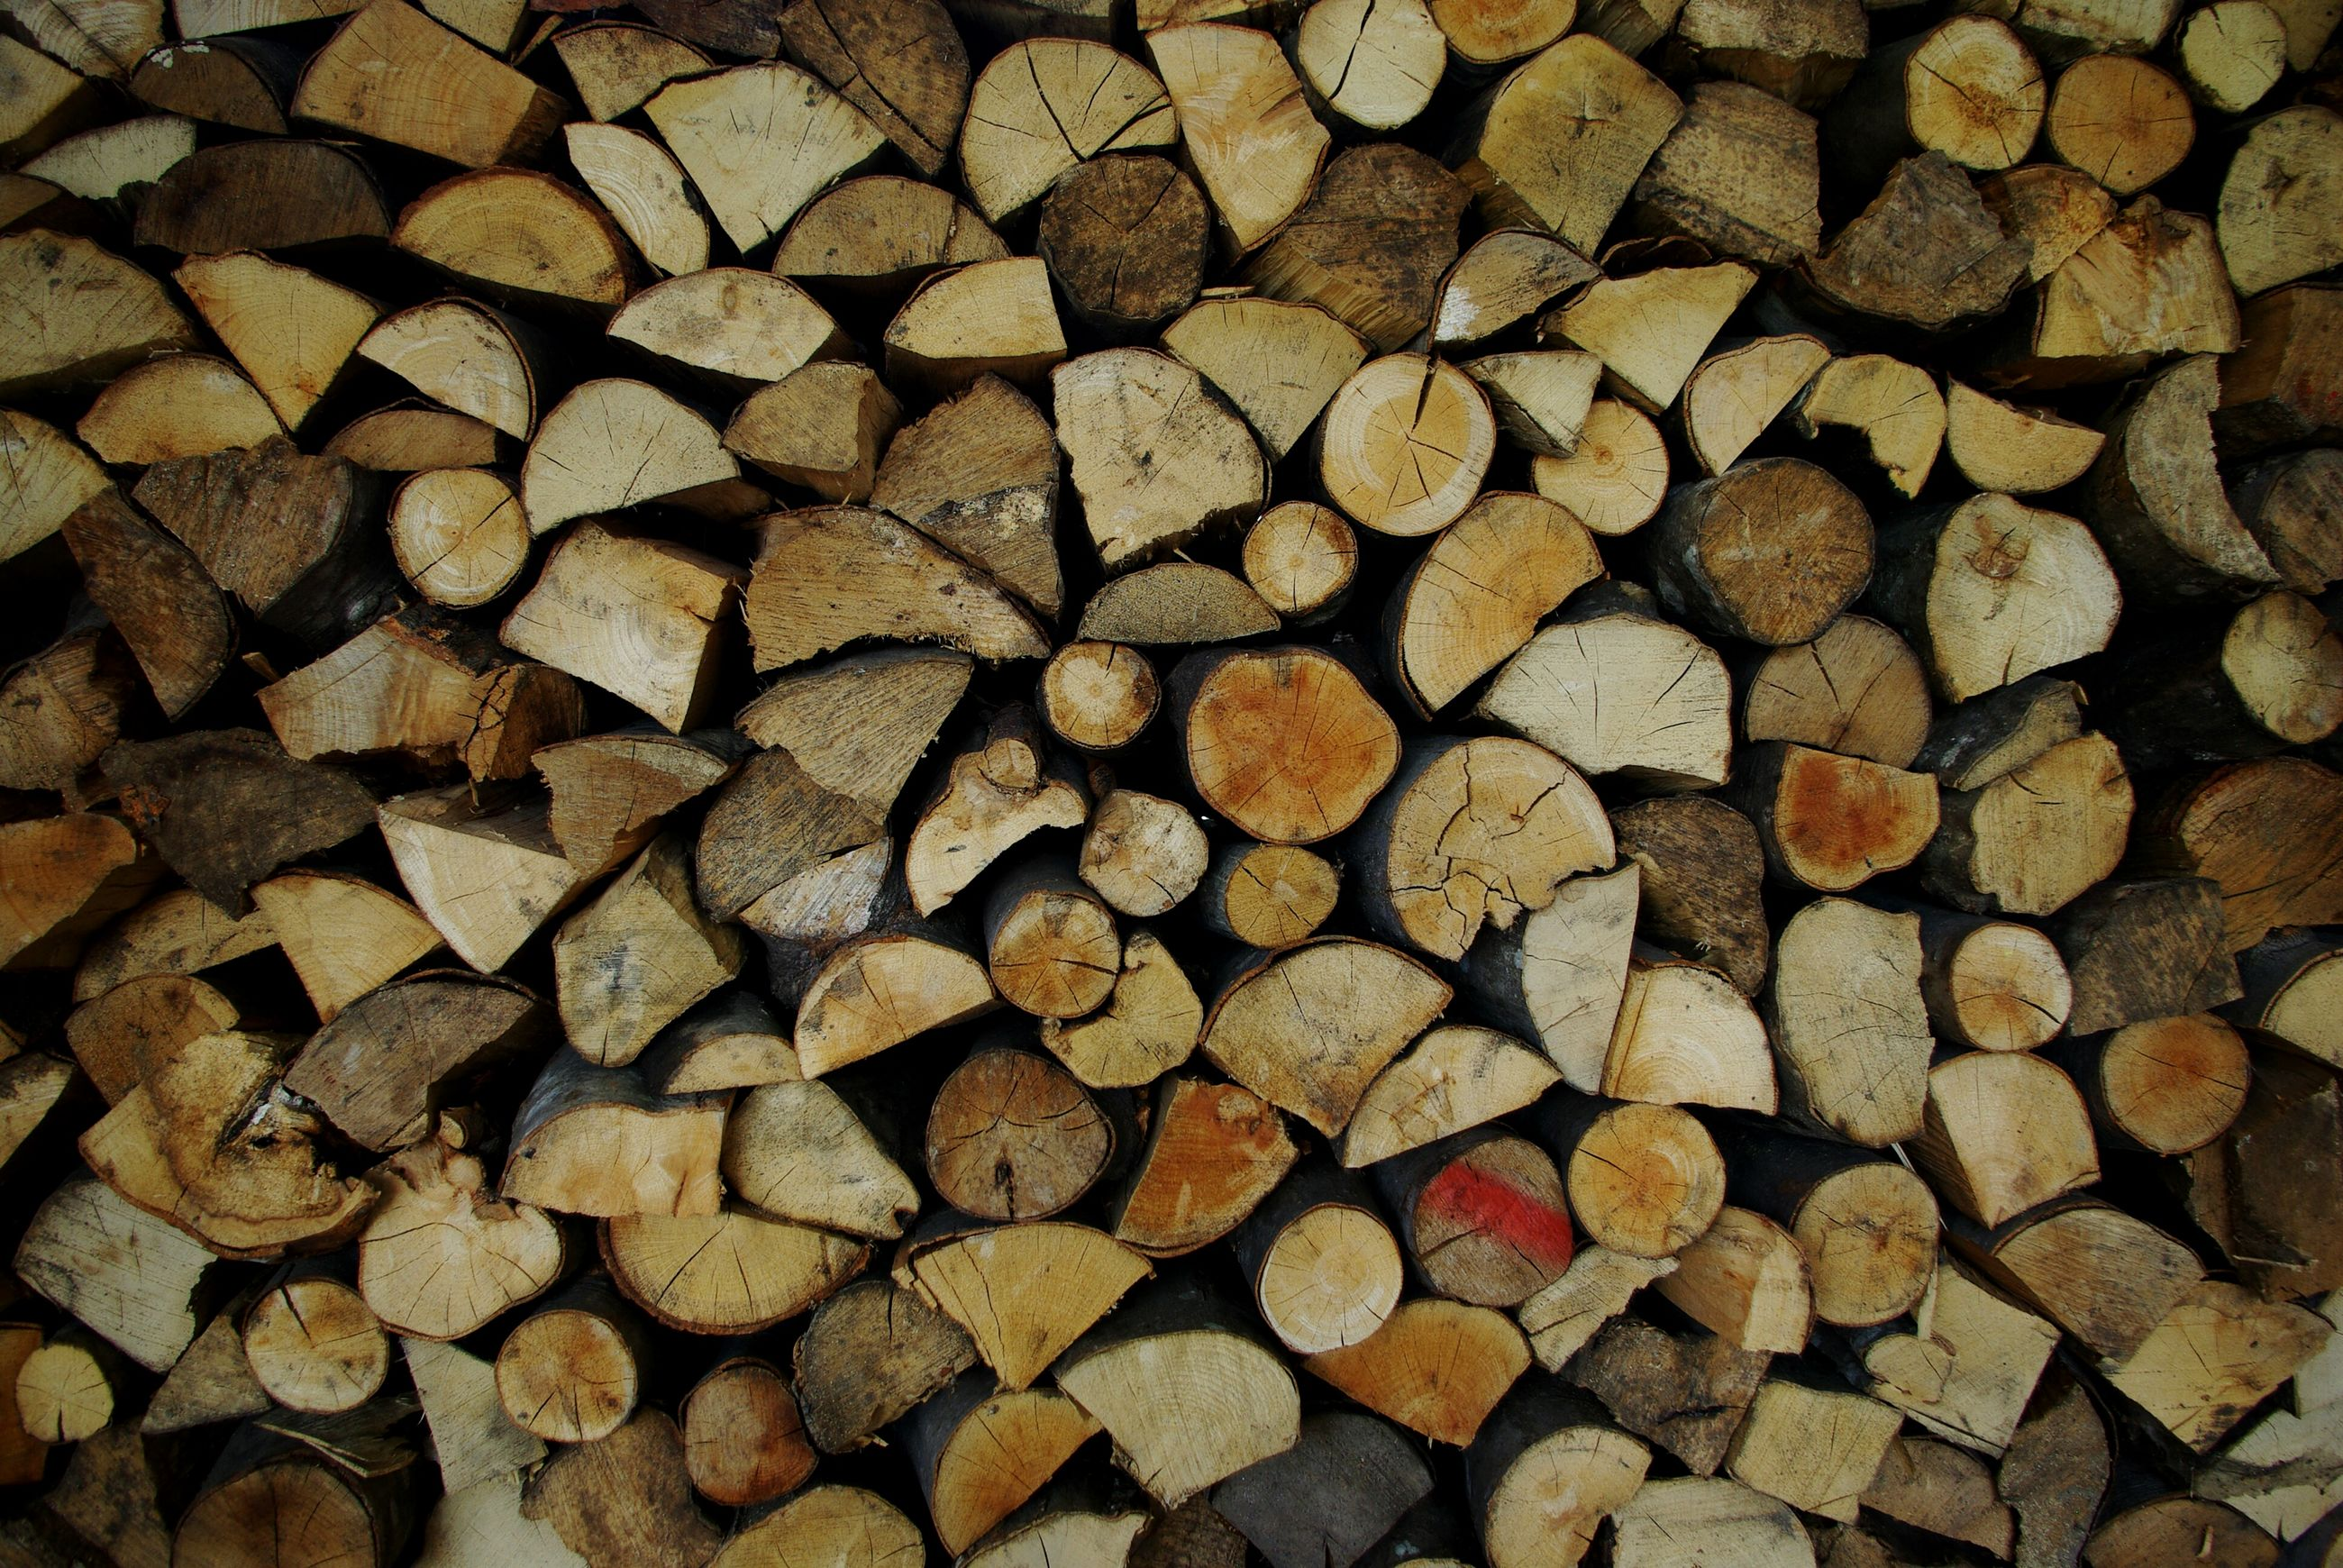 large group of objects, firewood, abundance, lumber industry, stack, full frame, log, deforestation, backgrounds, timber, wood - material, environmental issues, heap, textured, woodpile, fuel and power generation, fossil fuel, pile, pattern, wood